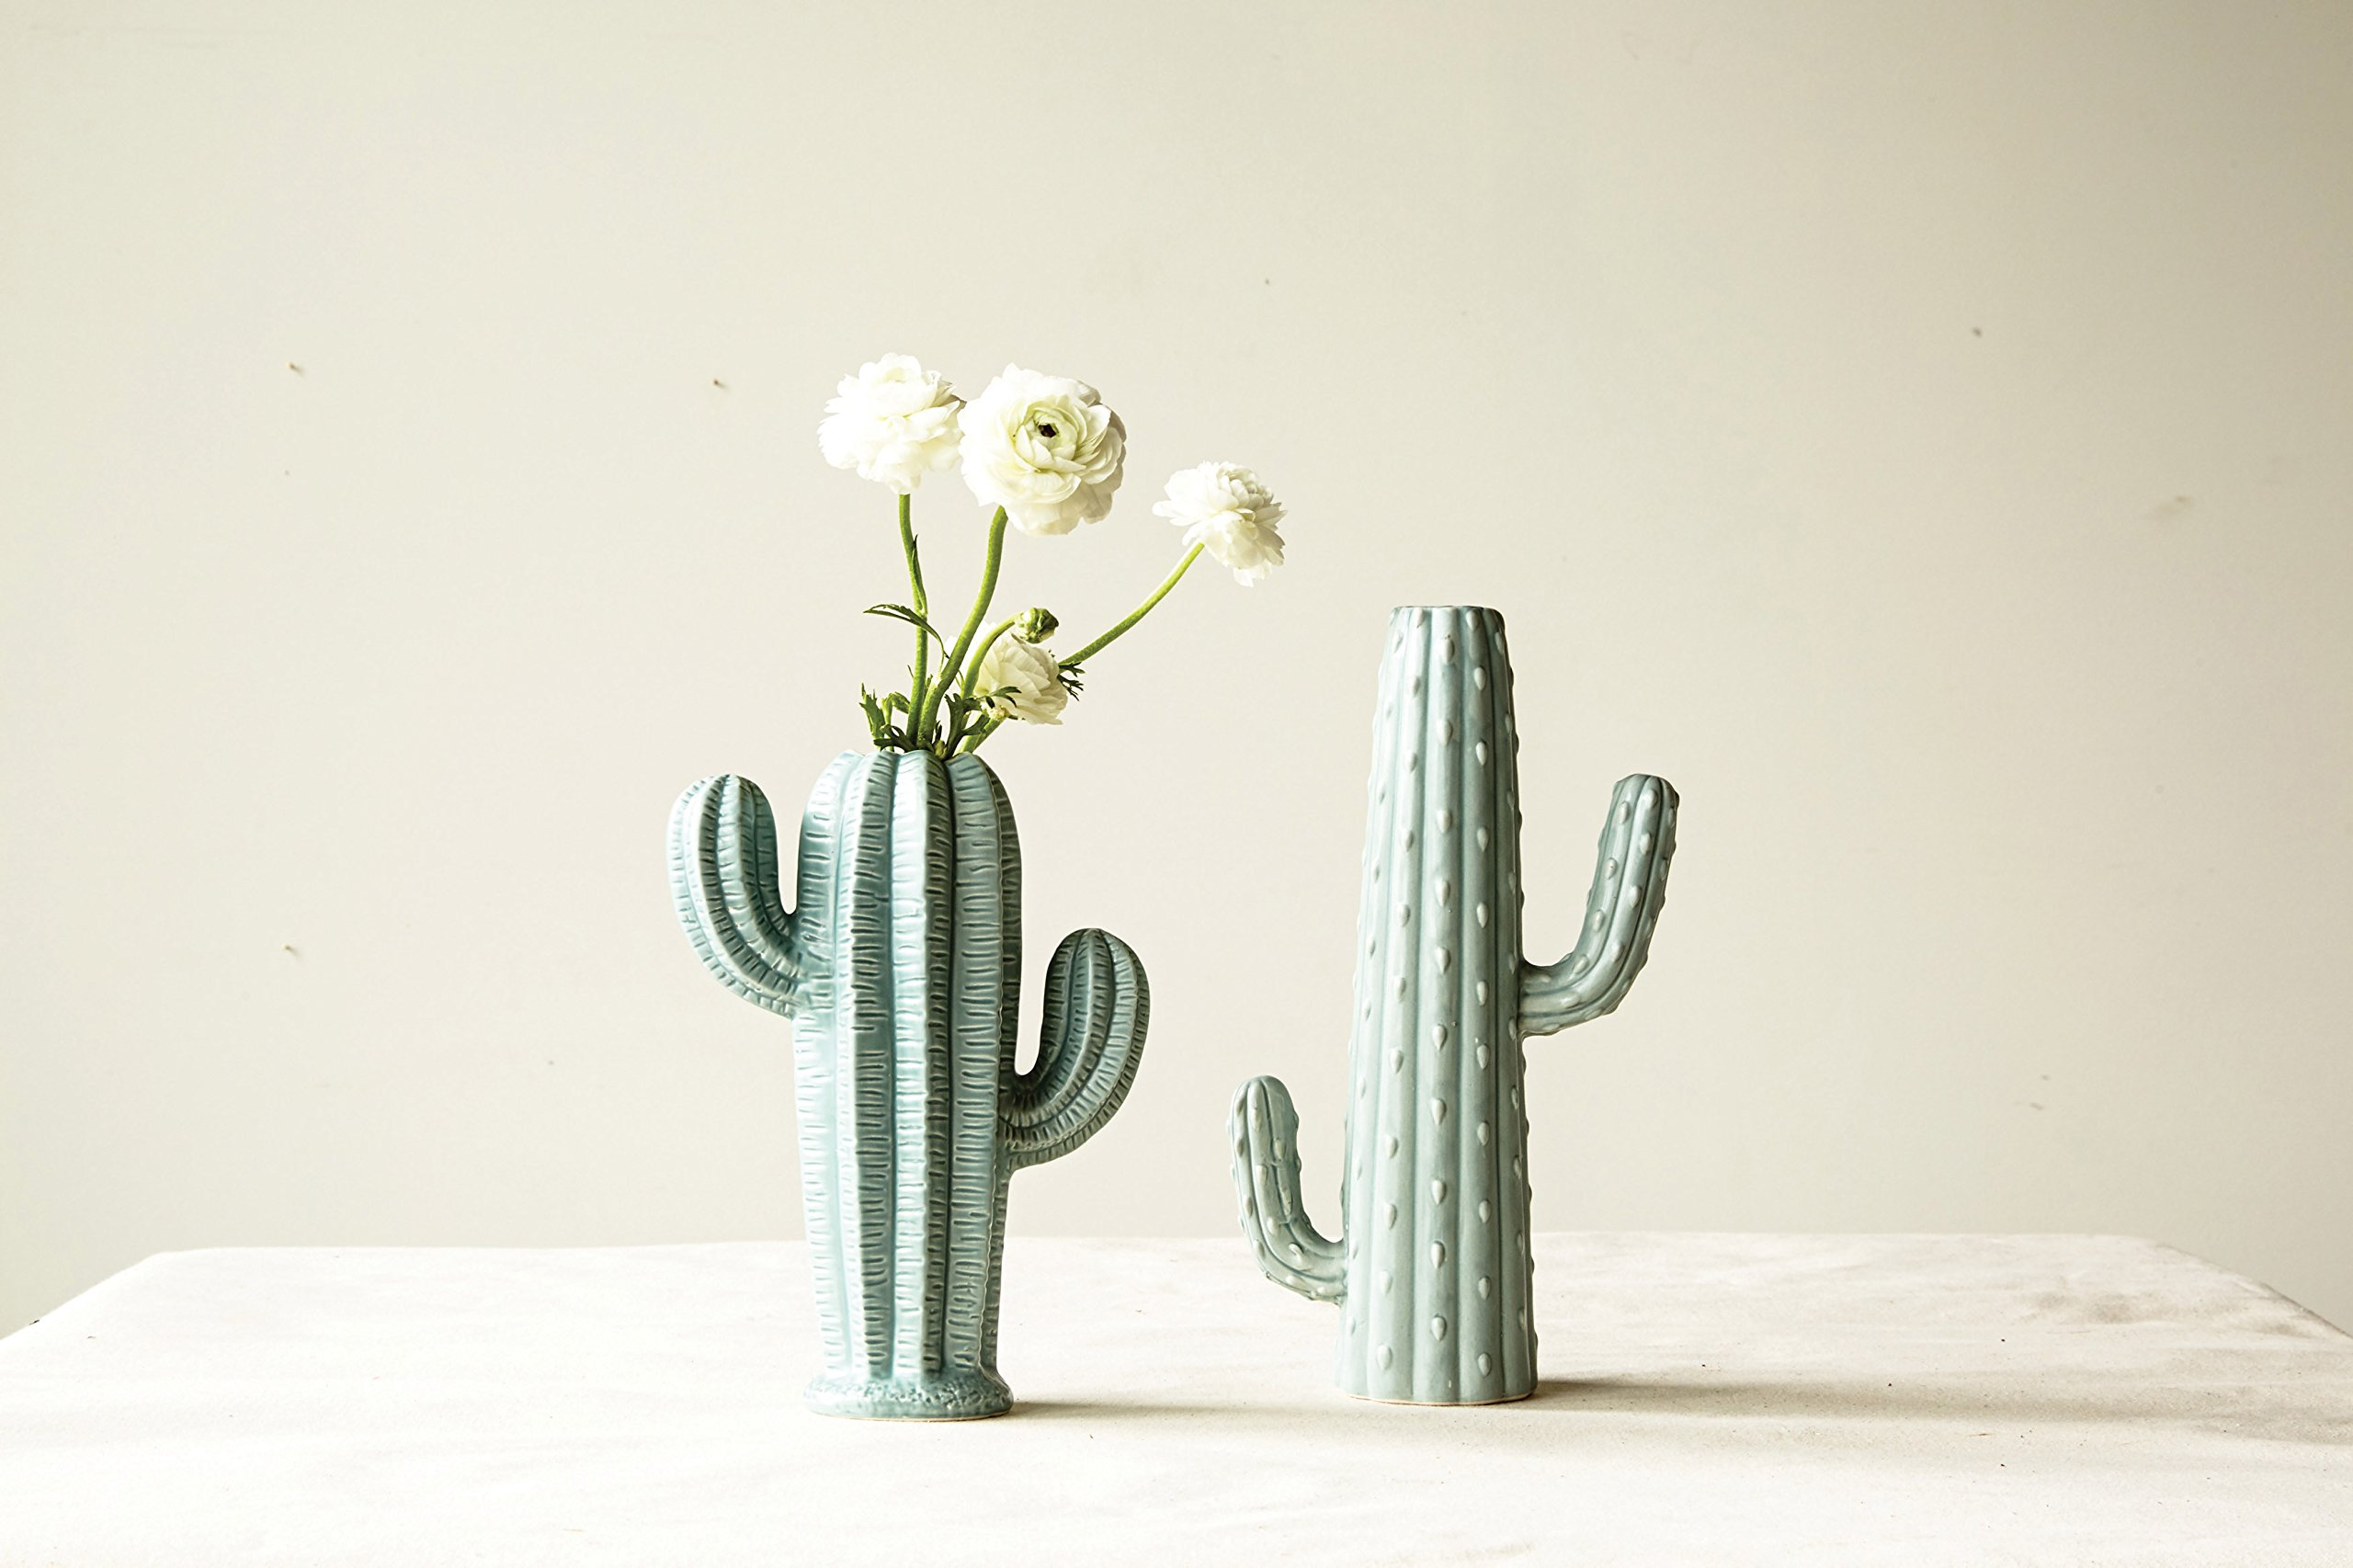 Creative Co-op Medium Stoneware Cactus Shaped Vase with Matte Sage Finish - Made with stoneware Vase is water tight Weighs 1.5 pounds - vases, kitchen-dining-room-decor, kitchen-dining-room - 818cfrWcitL -